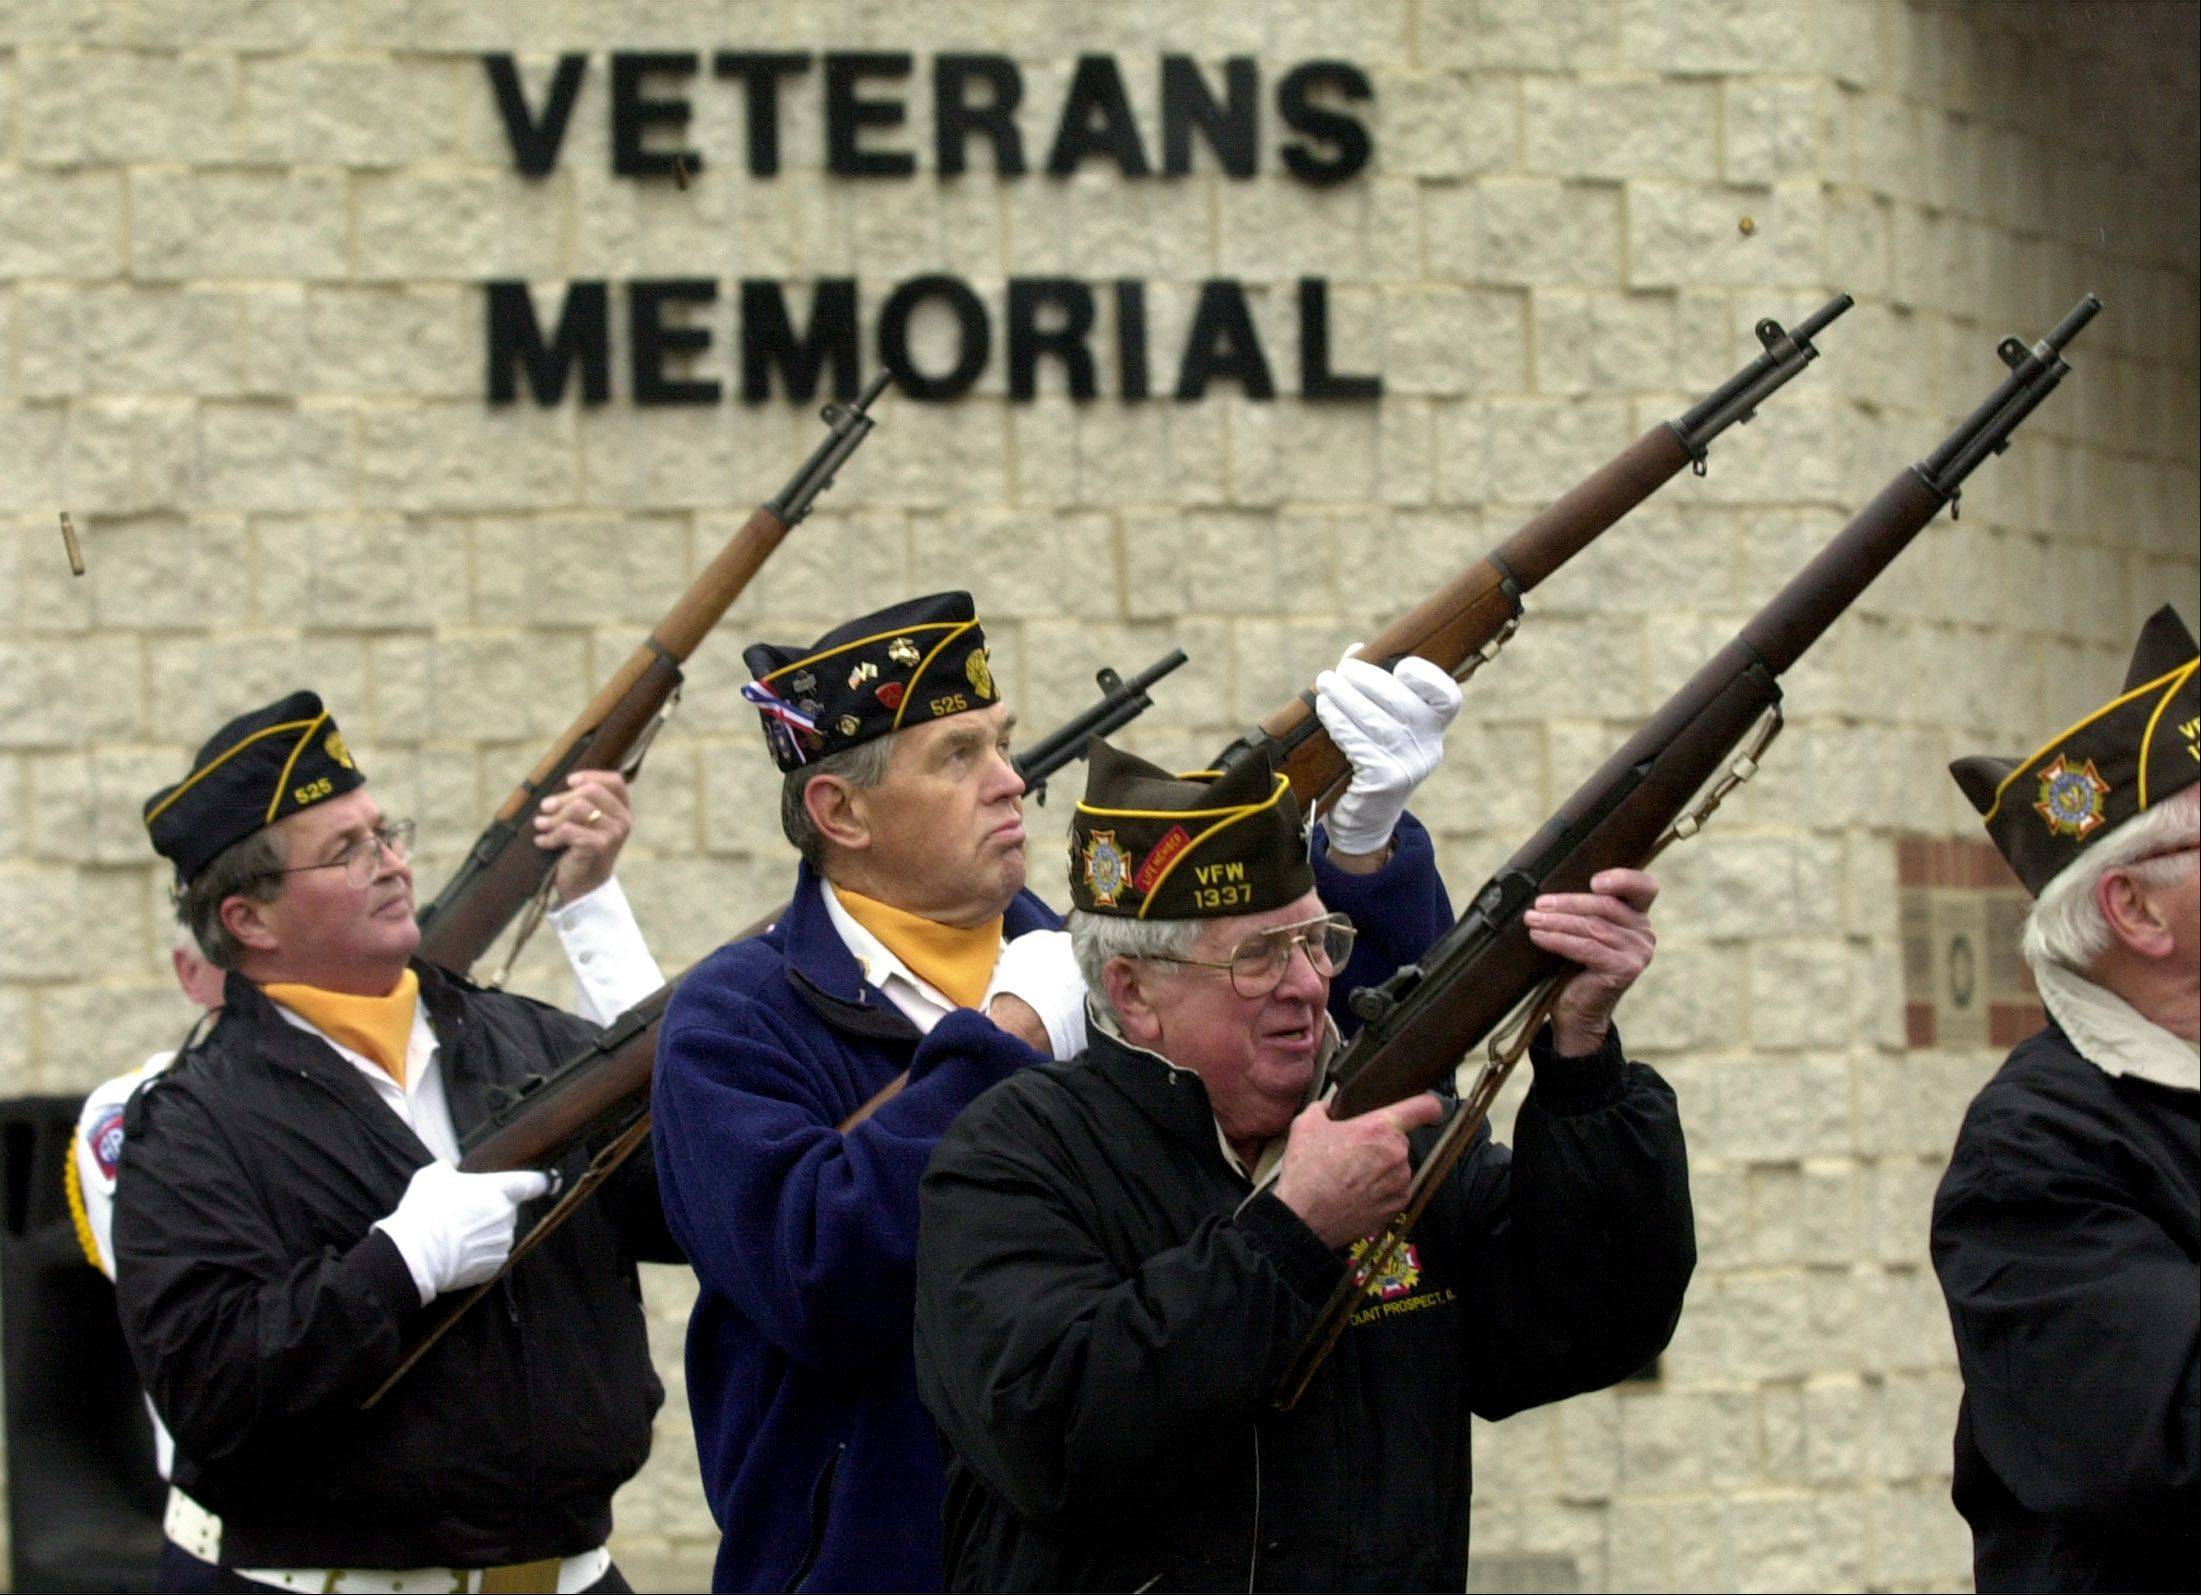 Members of the American Legion Post 525 and VFW Post 1337 give a rifle salute during the Mount Prospect Veterans Day ceremony at the Veterans Memorial Band Shell in Lions Memorial Park.